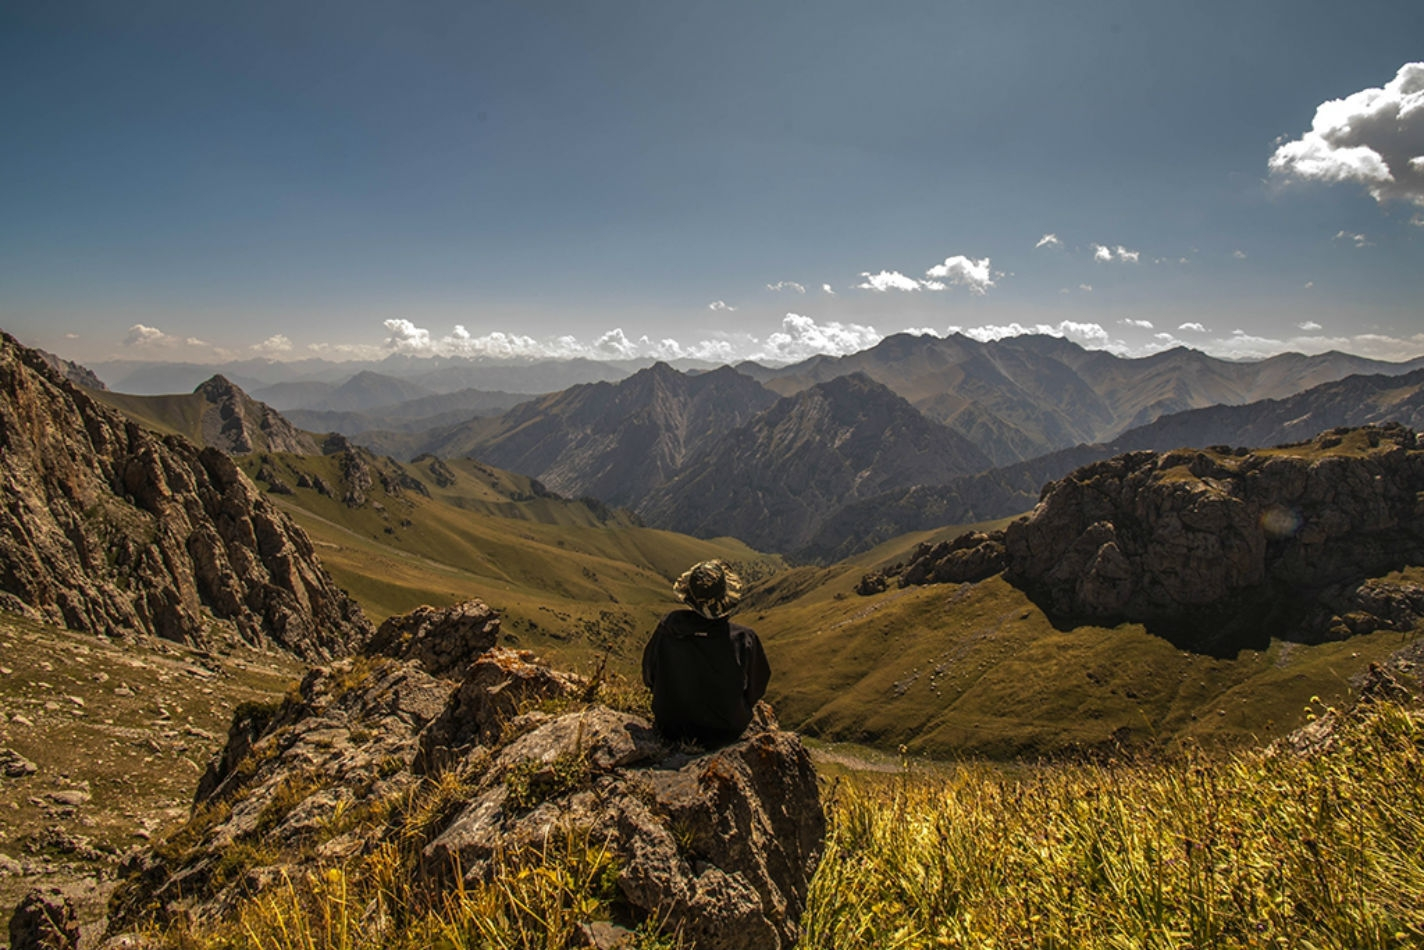 Can You Find Kyrgyzstan on a Map? Now Might Be The Time - The Trek